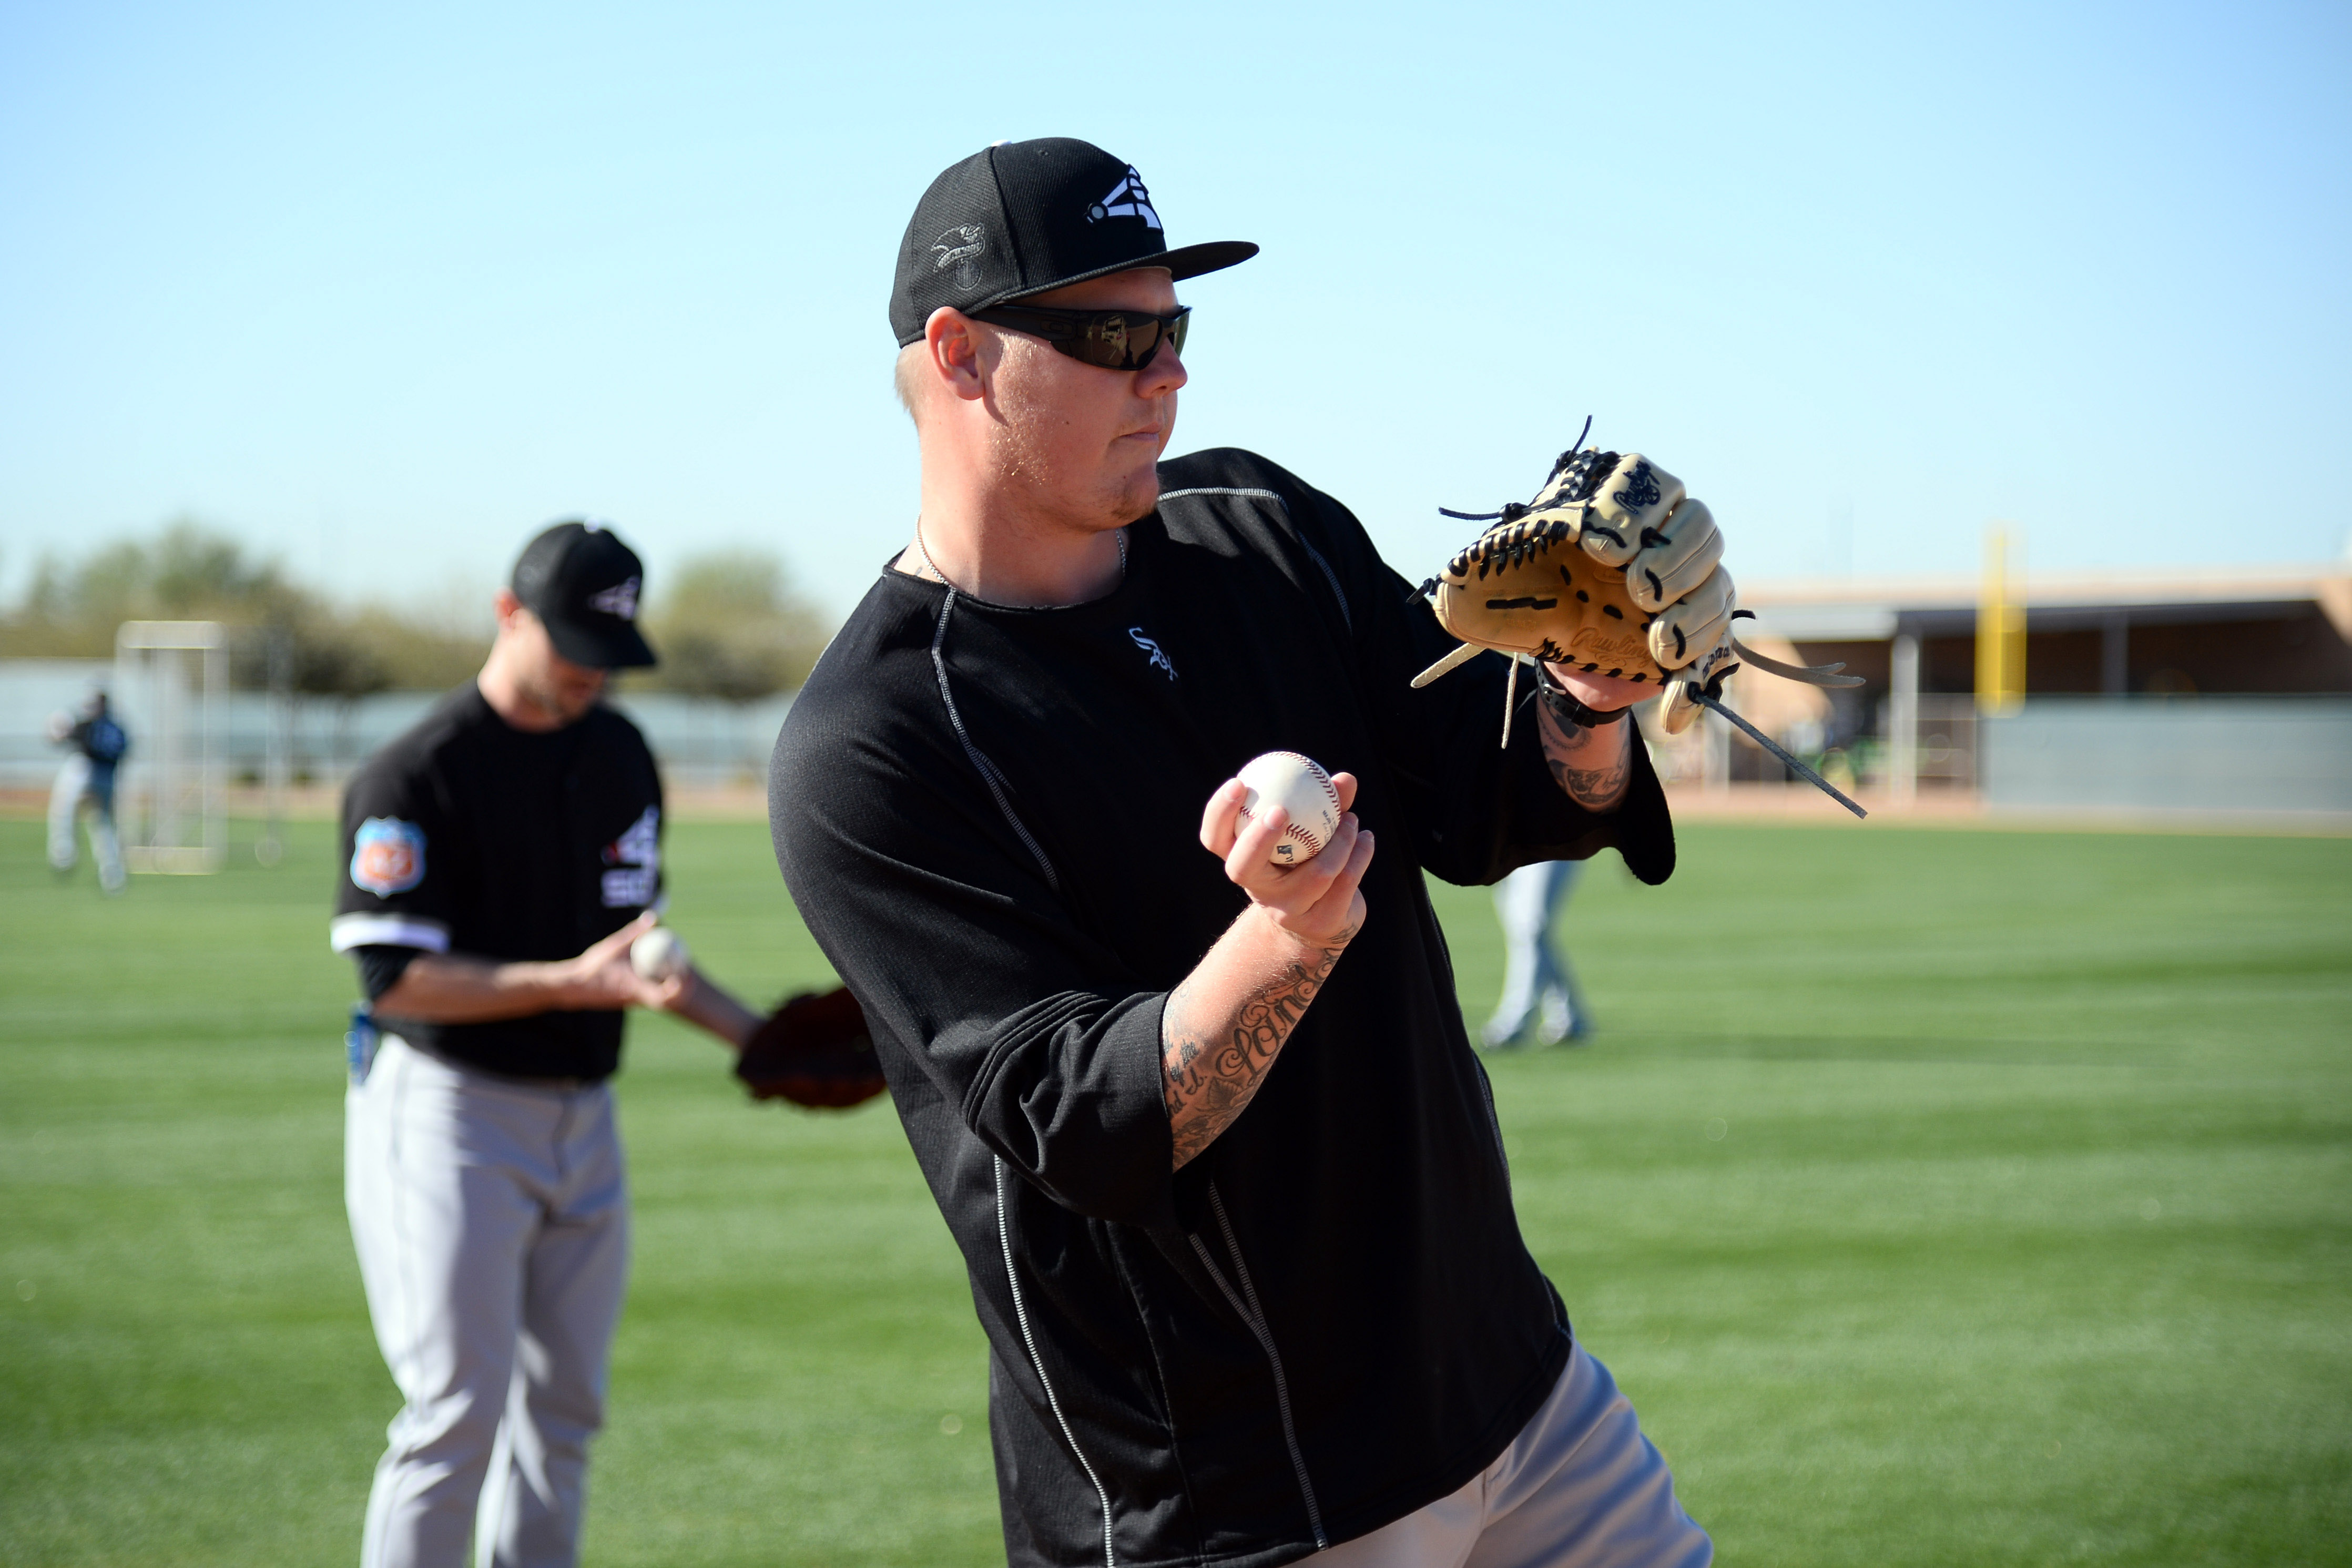 9137832-mlb-chicago-white-sox-workout